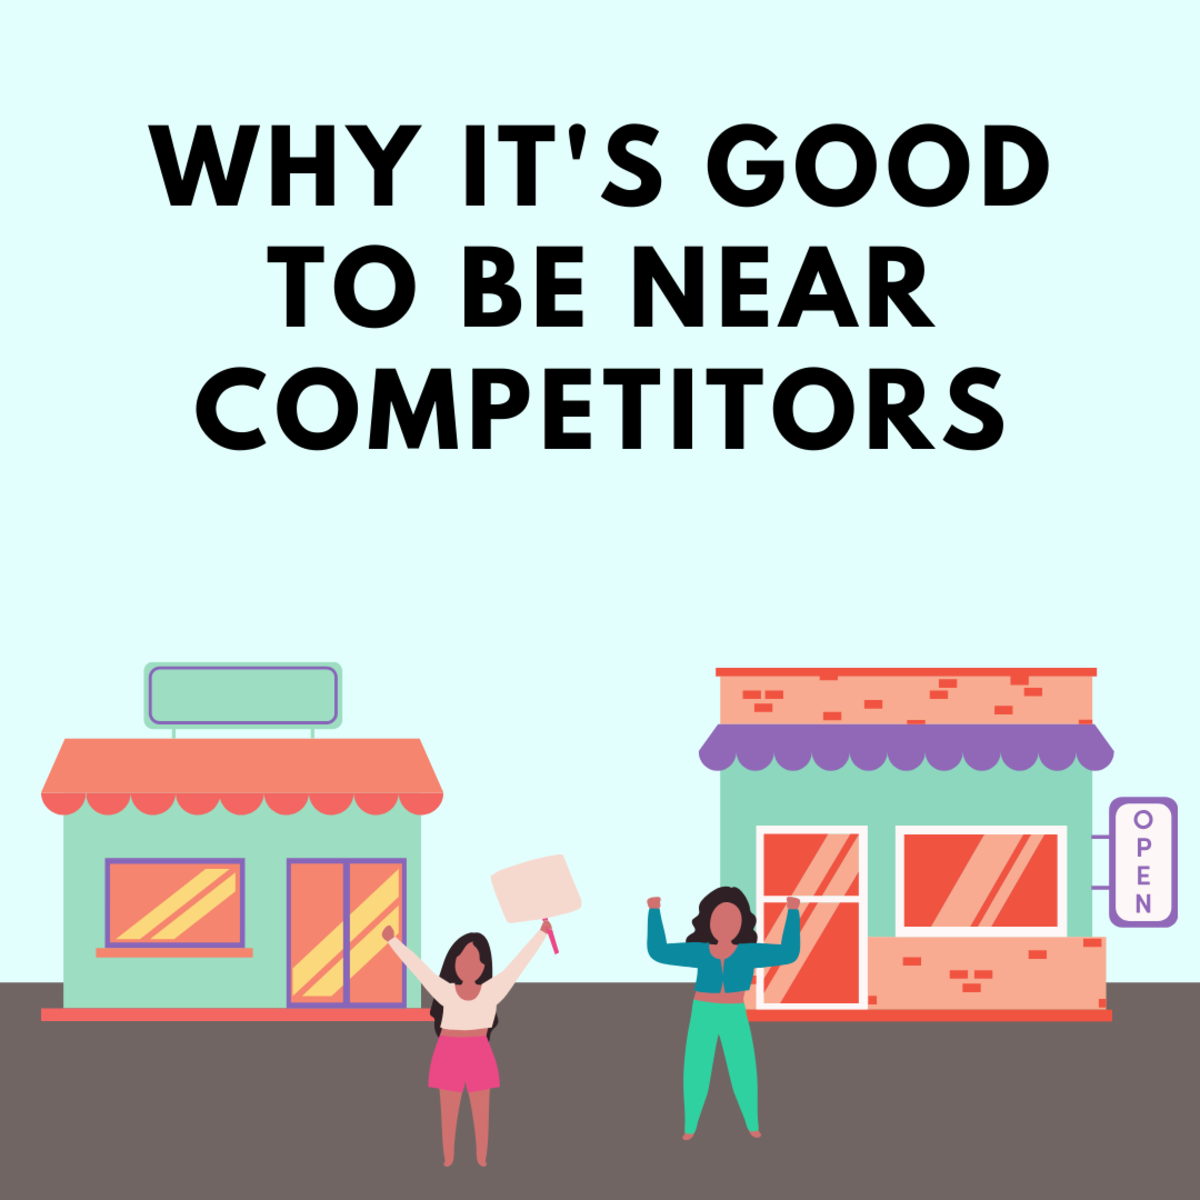 Competitive Advantage: Why It's Good to Be Near Competitors